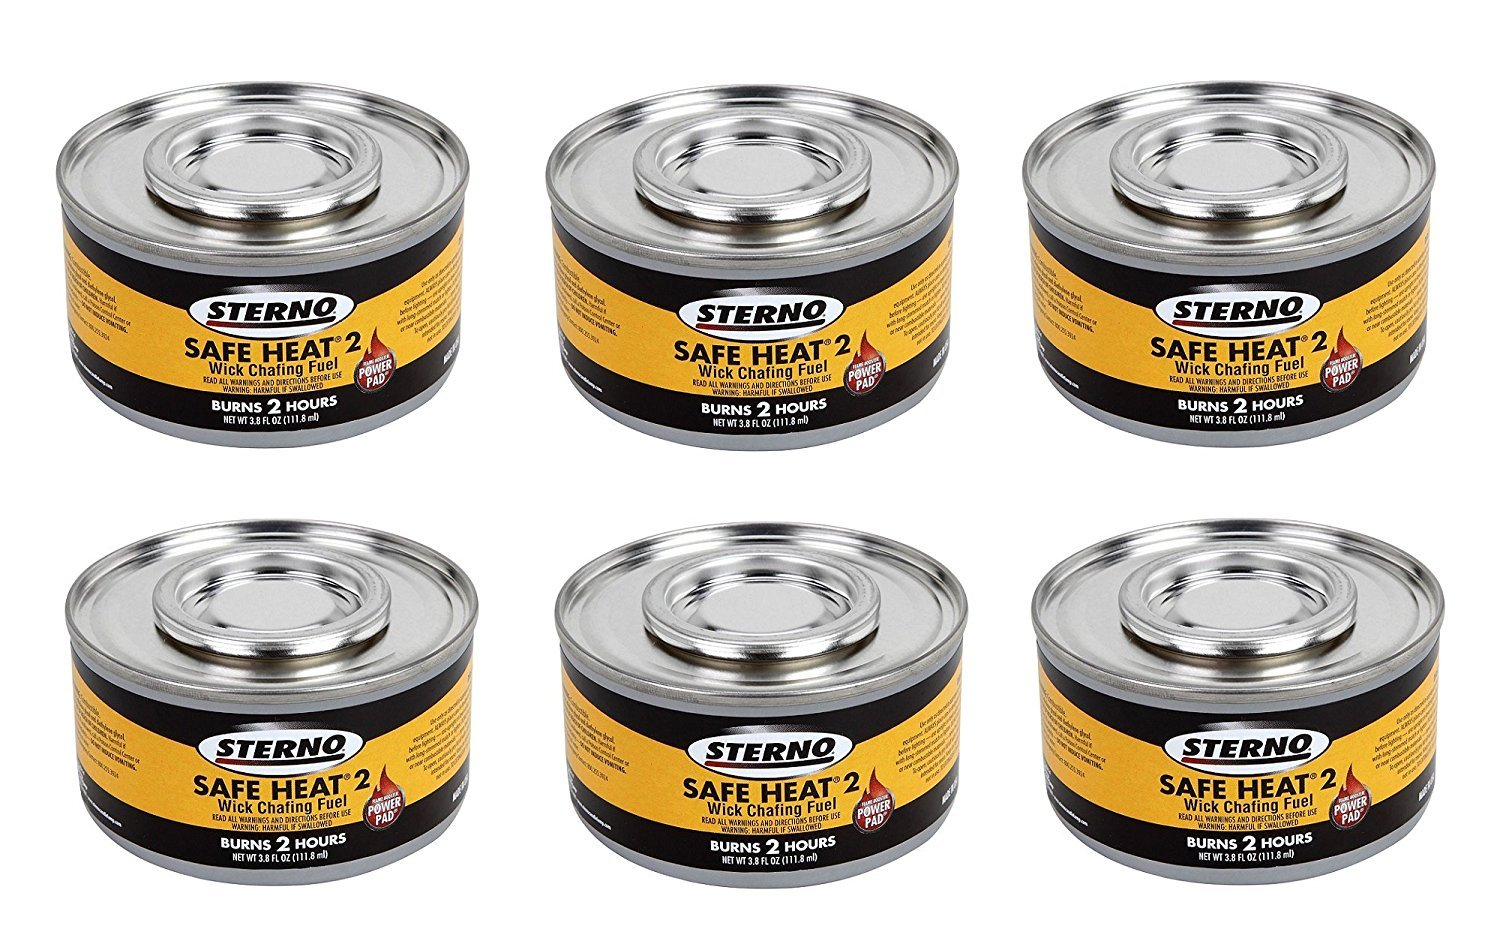 Sterno 2 Hour Safe Heat Chafing Dish Fuel With PowerPad Feature, 6 Cans,3.80 fl OZ. by Sterno